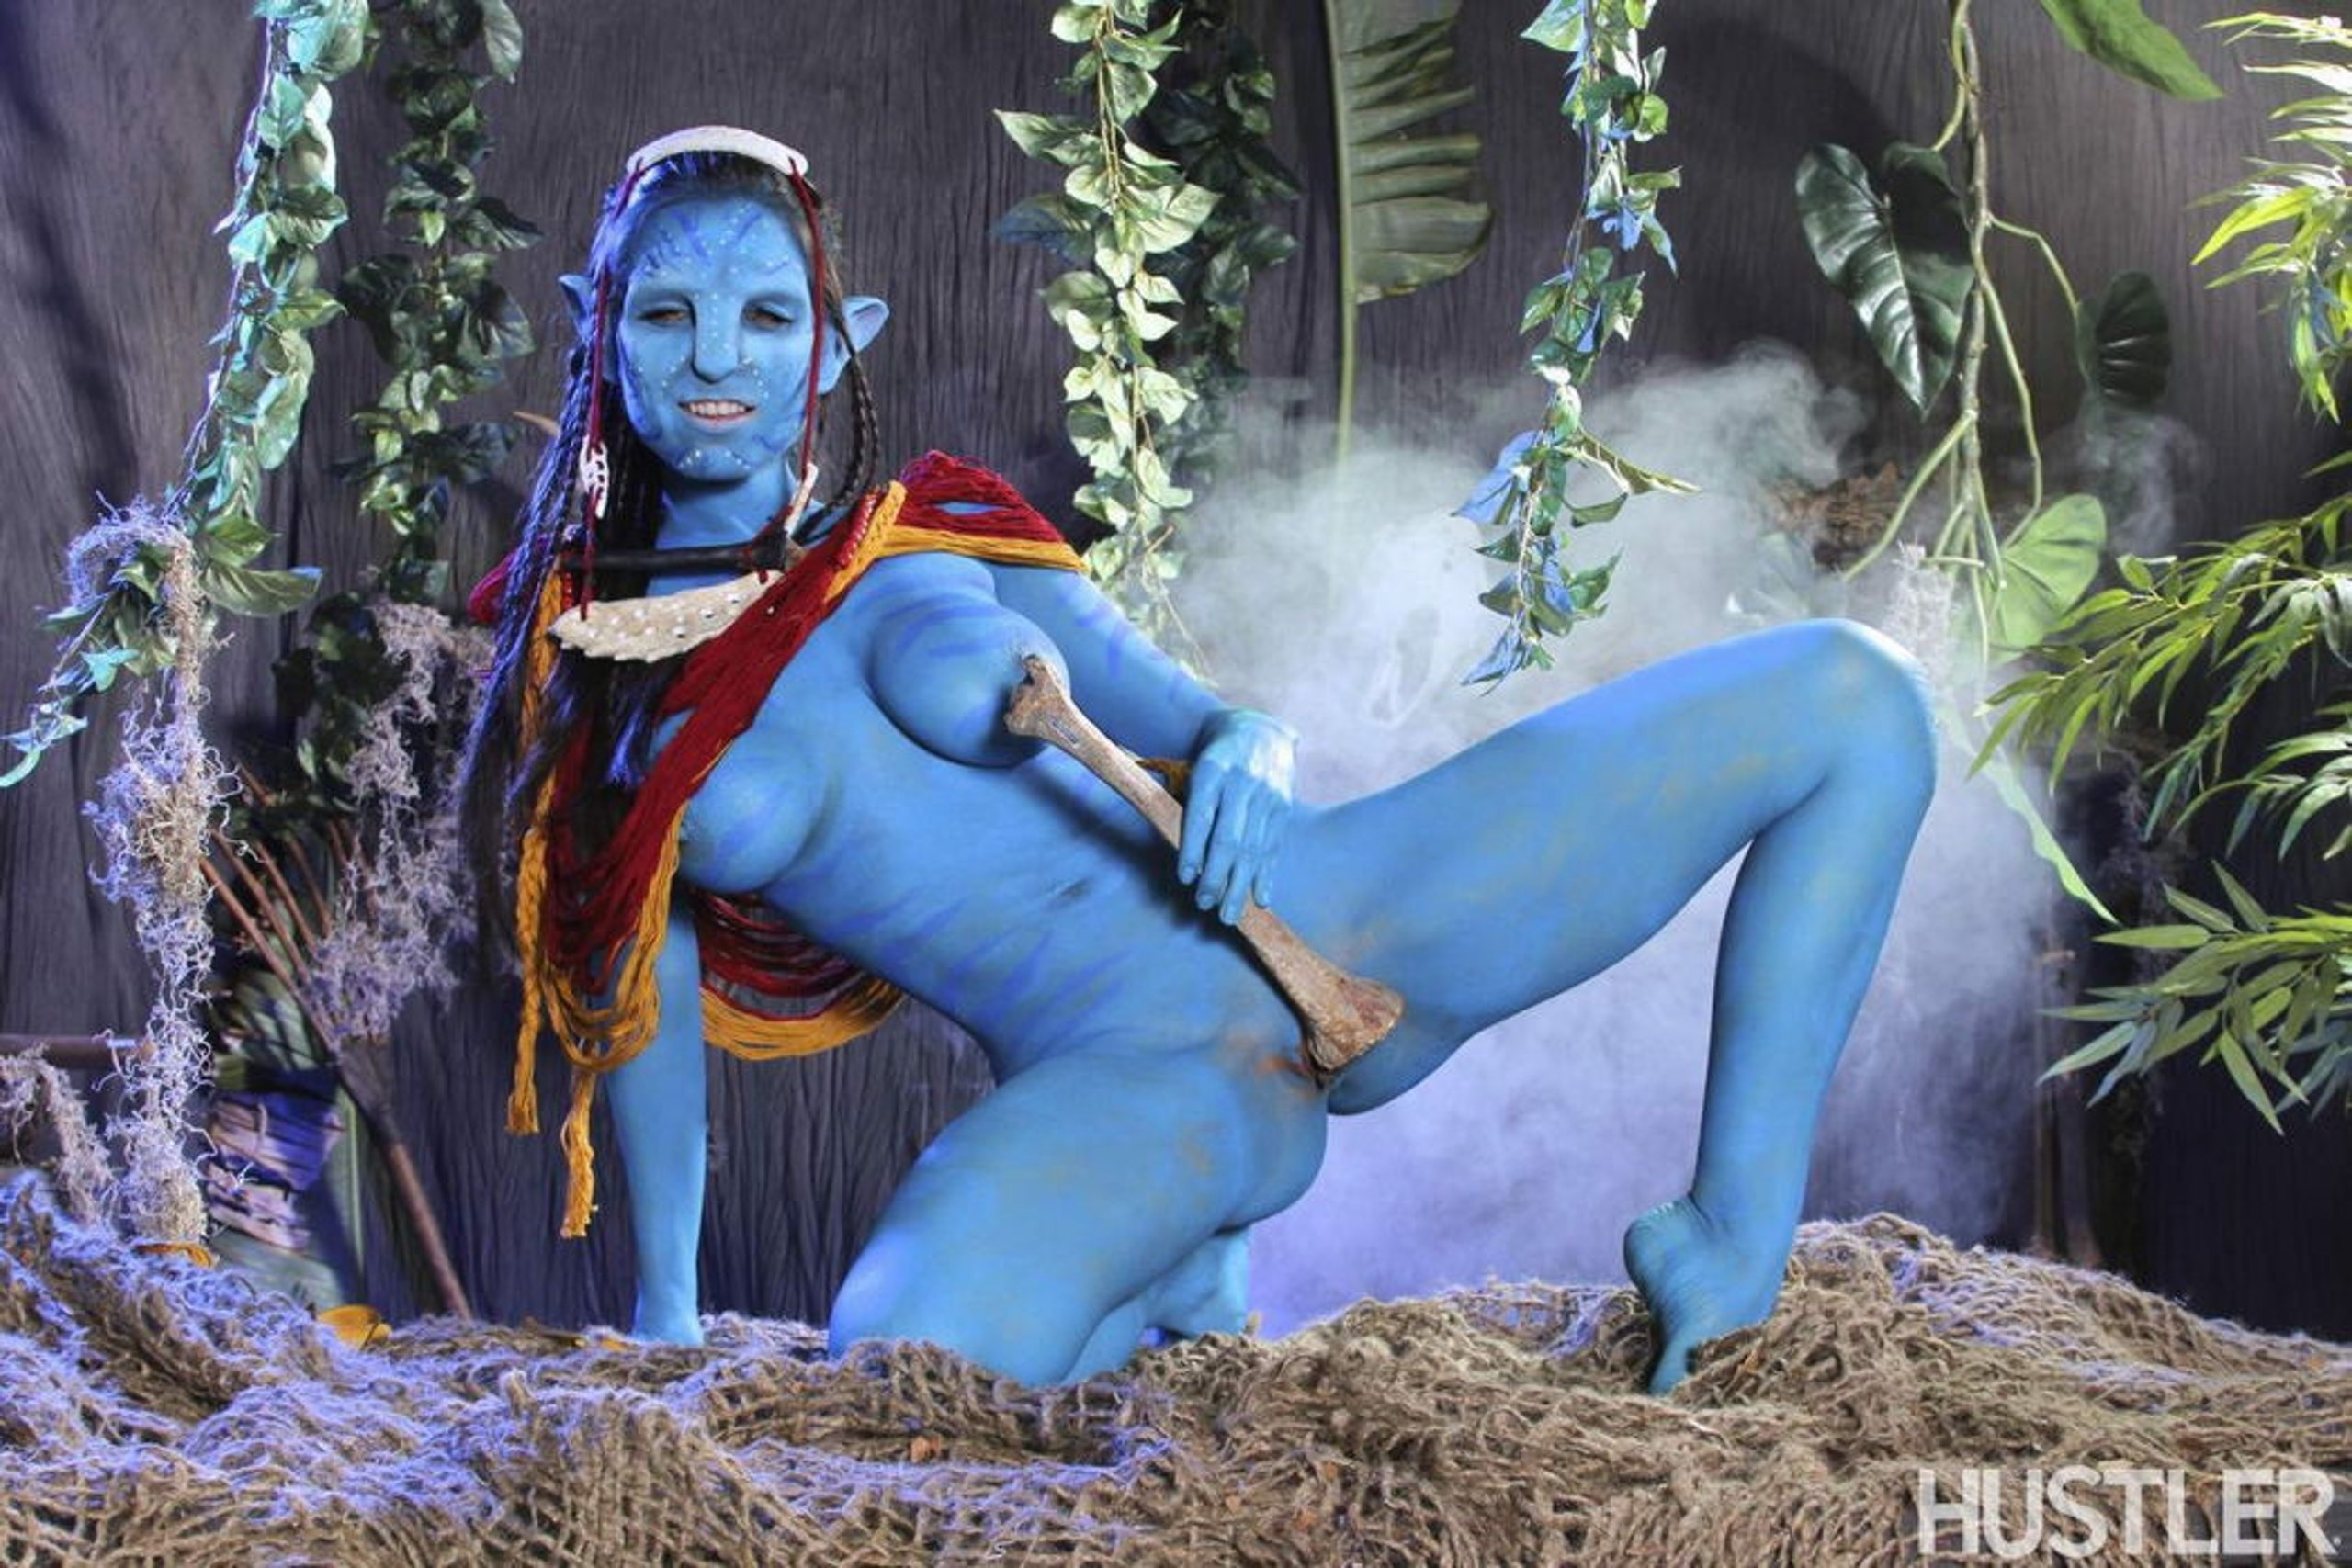 Avatar show naked pics very